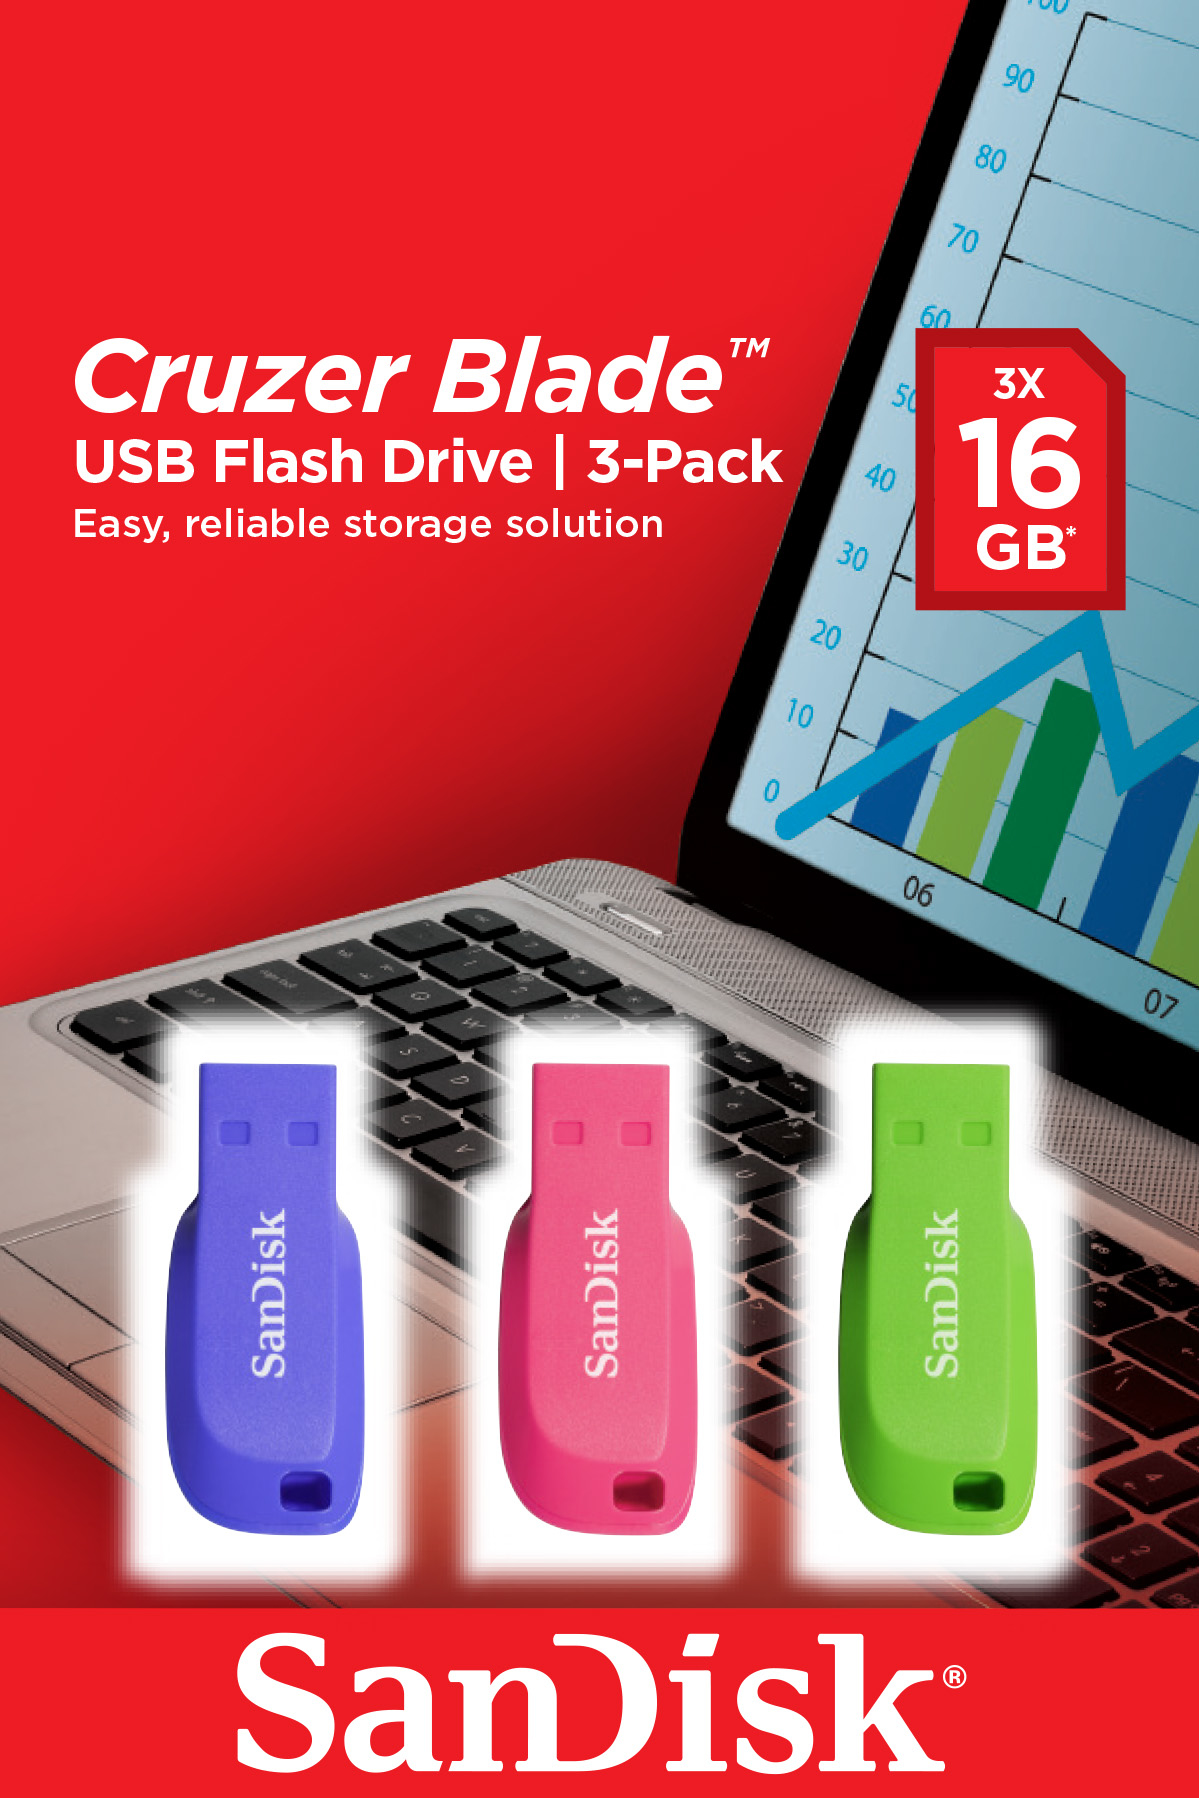 SANDISK CRUZER BLADE 16GB USB 2.0 TYPE-A CONNECTOR BLUE, GREEN, PINK FLASH DRIVE